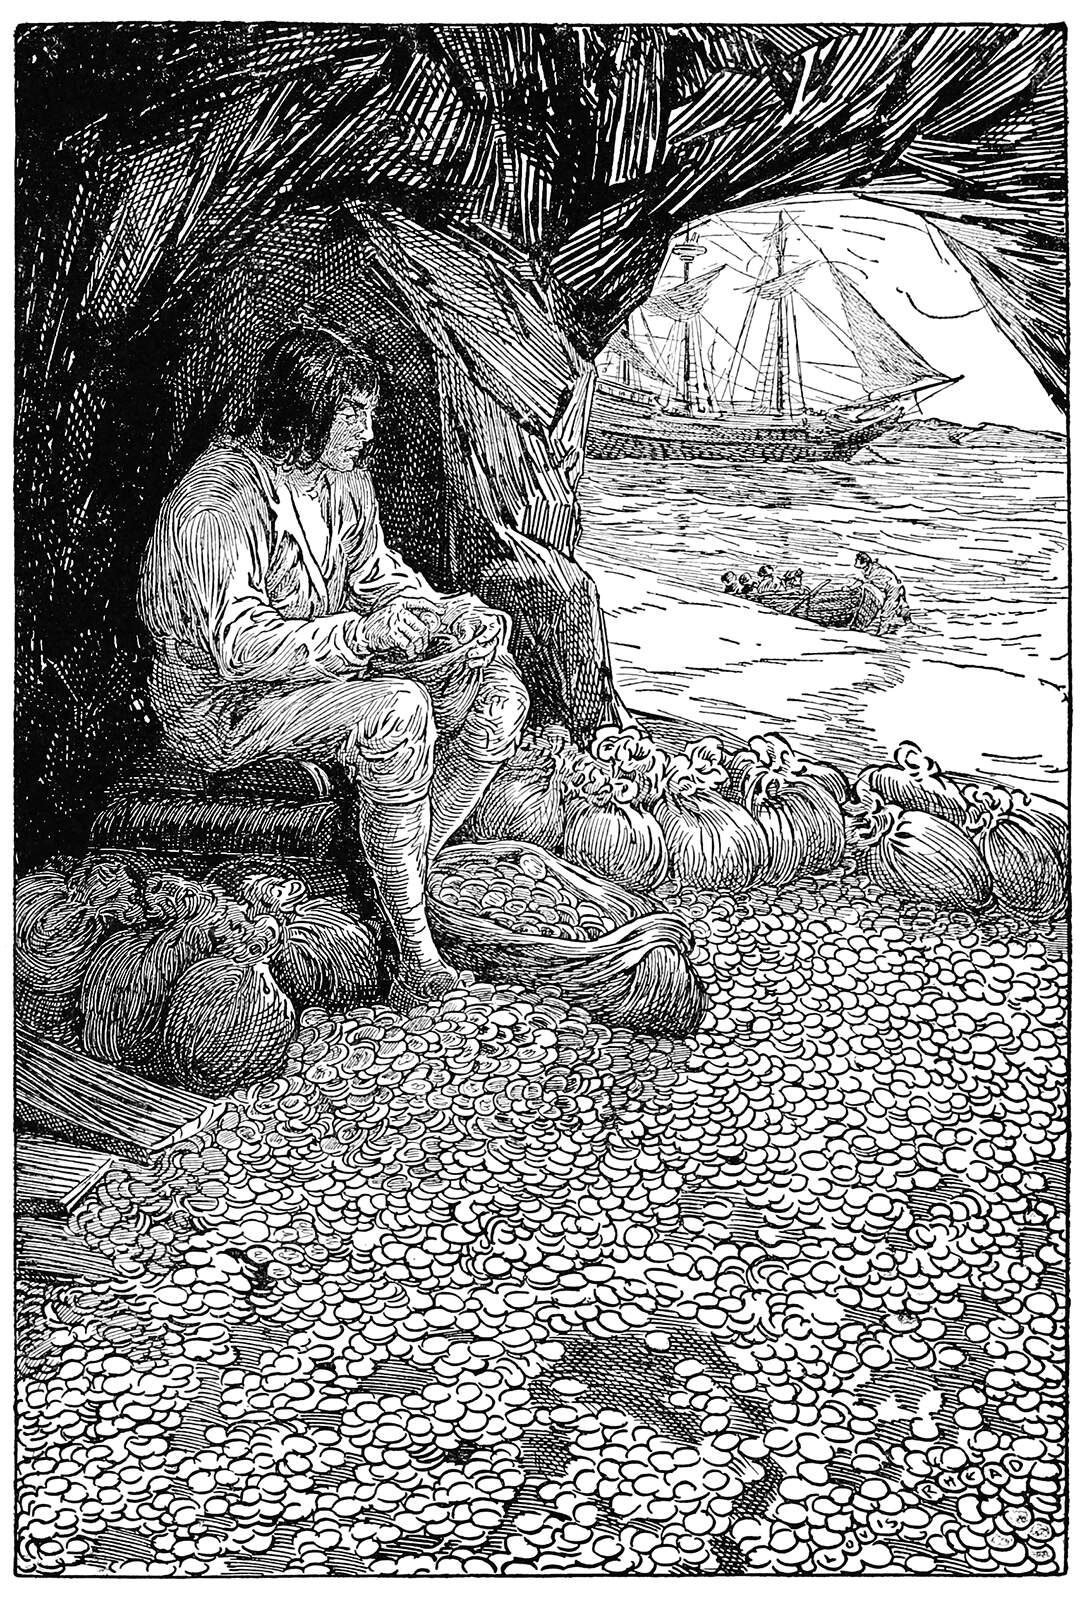 A man sits in a cave surrounded by coins